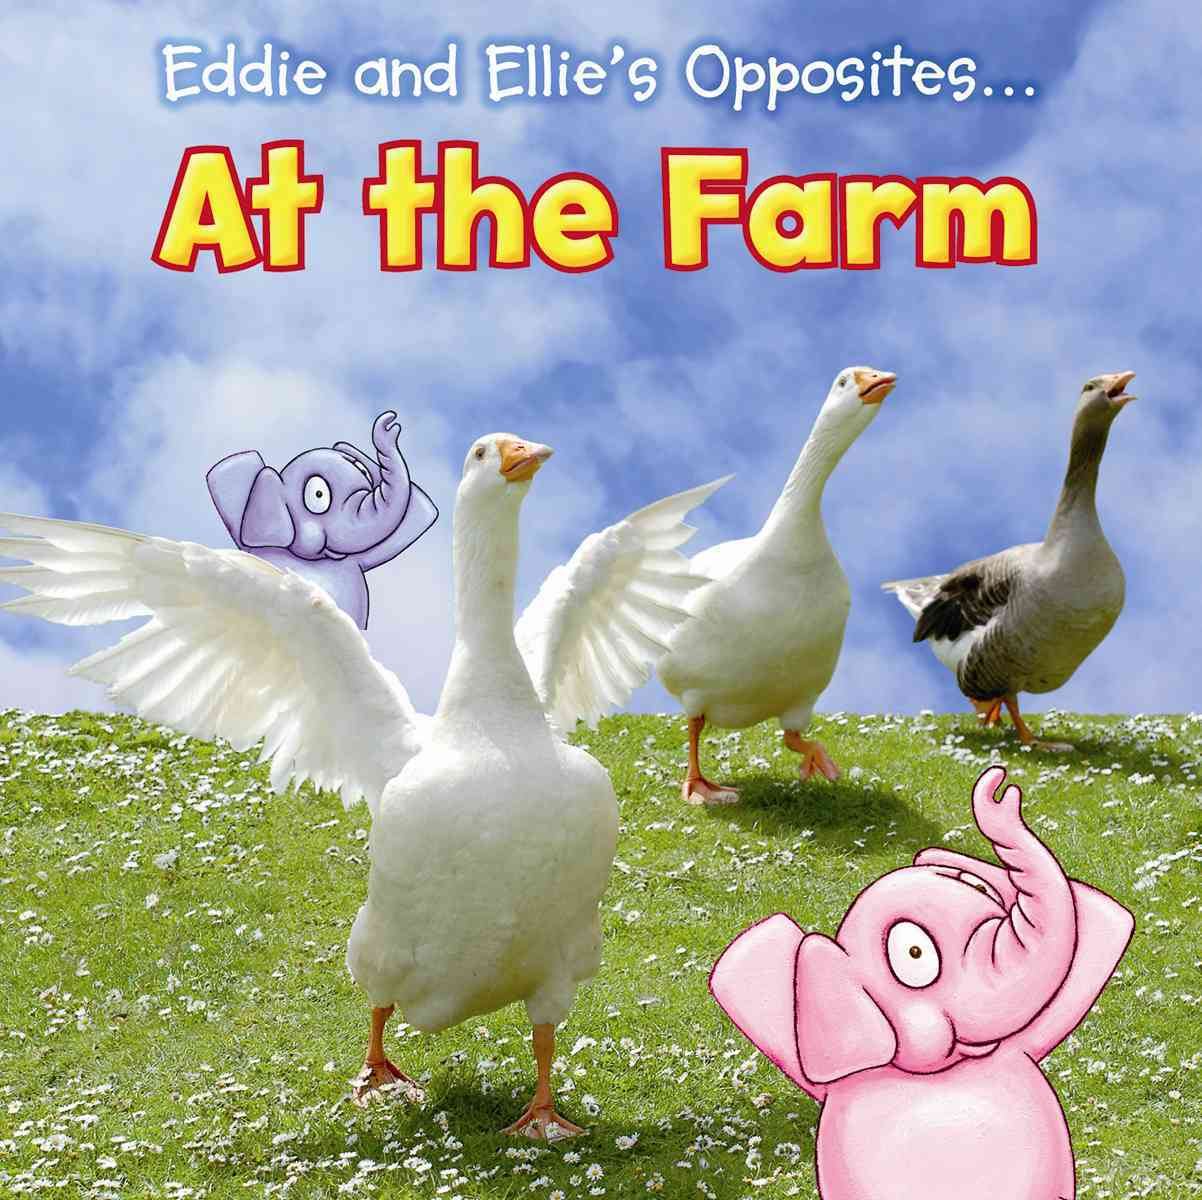 Eddie and Ellie's Opposites at the Farm By Rissman, Rebecca